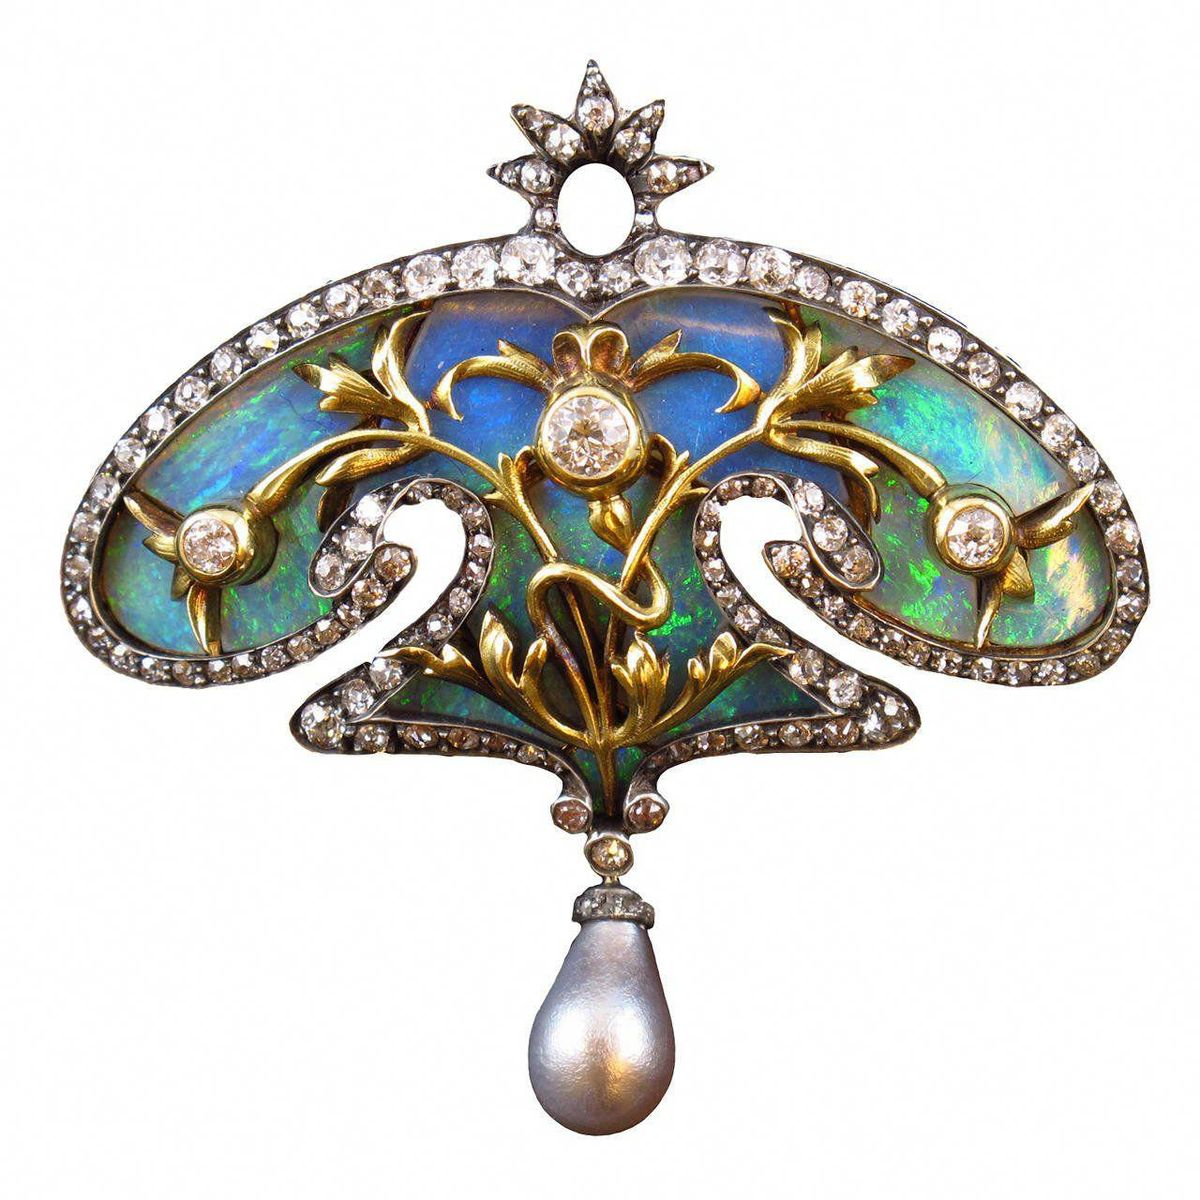 """Art Nouveau Pearl Opal Diamond Brooch. An exquisite Art Nouveau opal, old-cut diamond and natural grey pearl brooch. In silver topped yellow gold, of cartouche design. France, circa 1900. <a class=""""pintag"""" href=""""/explore/diamondbrooches/"""" title=""""#diamondbrooches explore Pinterest"""">#diamondbrooches</a><p><a href=""""http://www.homeinteriordesign.org/2018/02/short-guide-to-interior-decoration.html"""">Short guide to interior decoration</a></p>"""